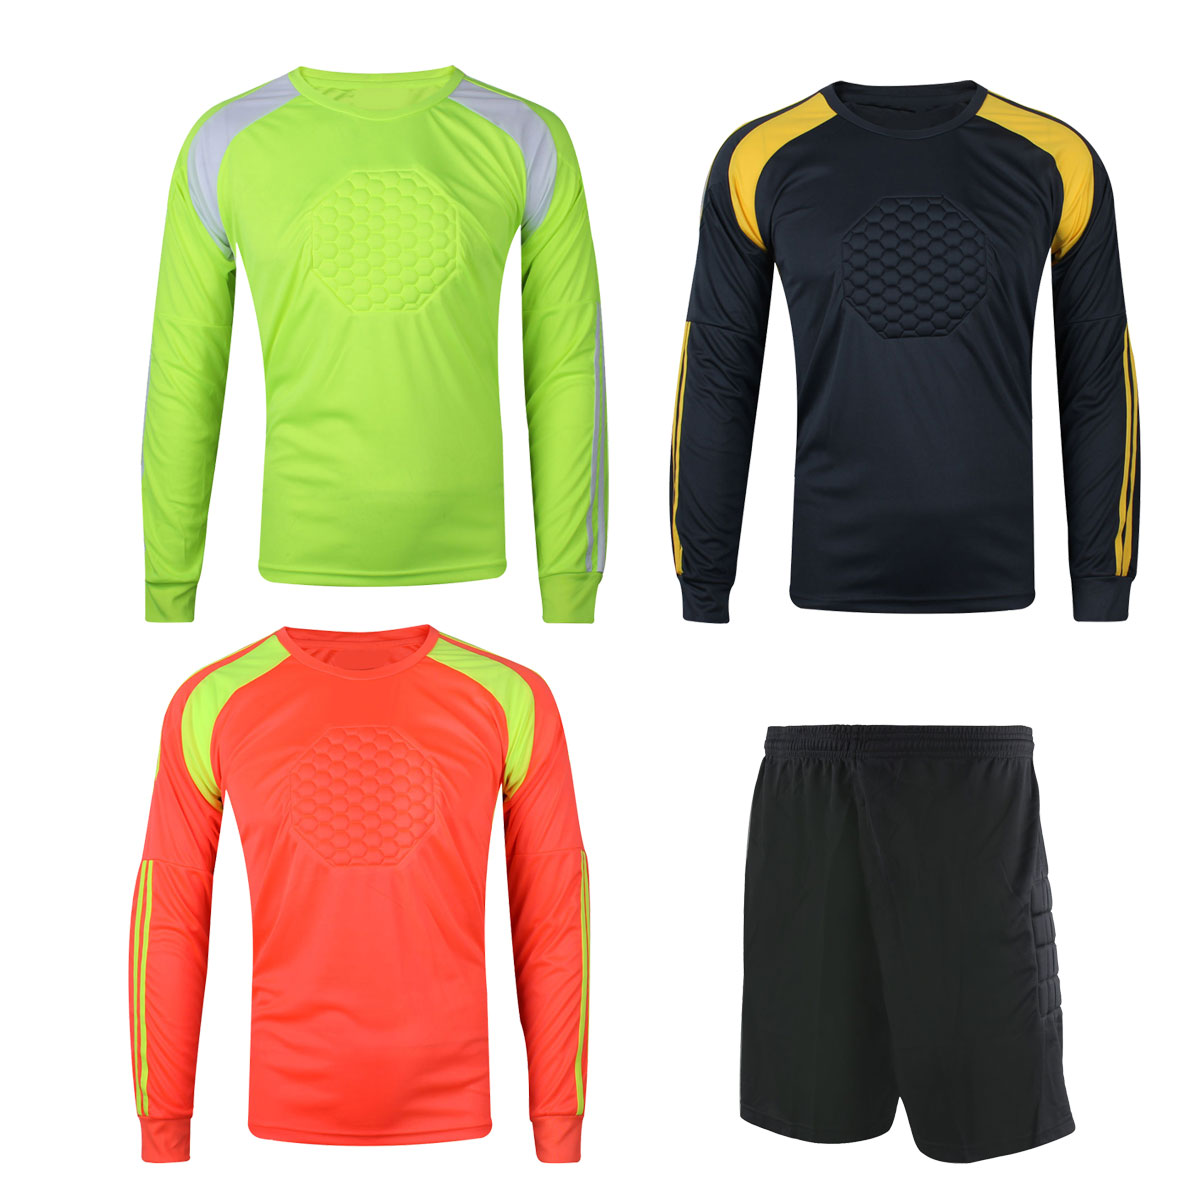 Luwint shipping goalkeeping goalkeeper clothing clothing clothing goalkeeper jersey dress clothes adult children dress shirt football clothes longmen longmen